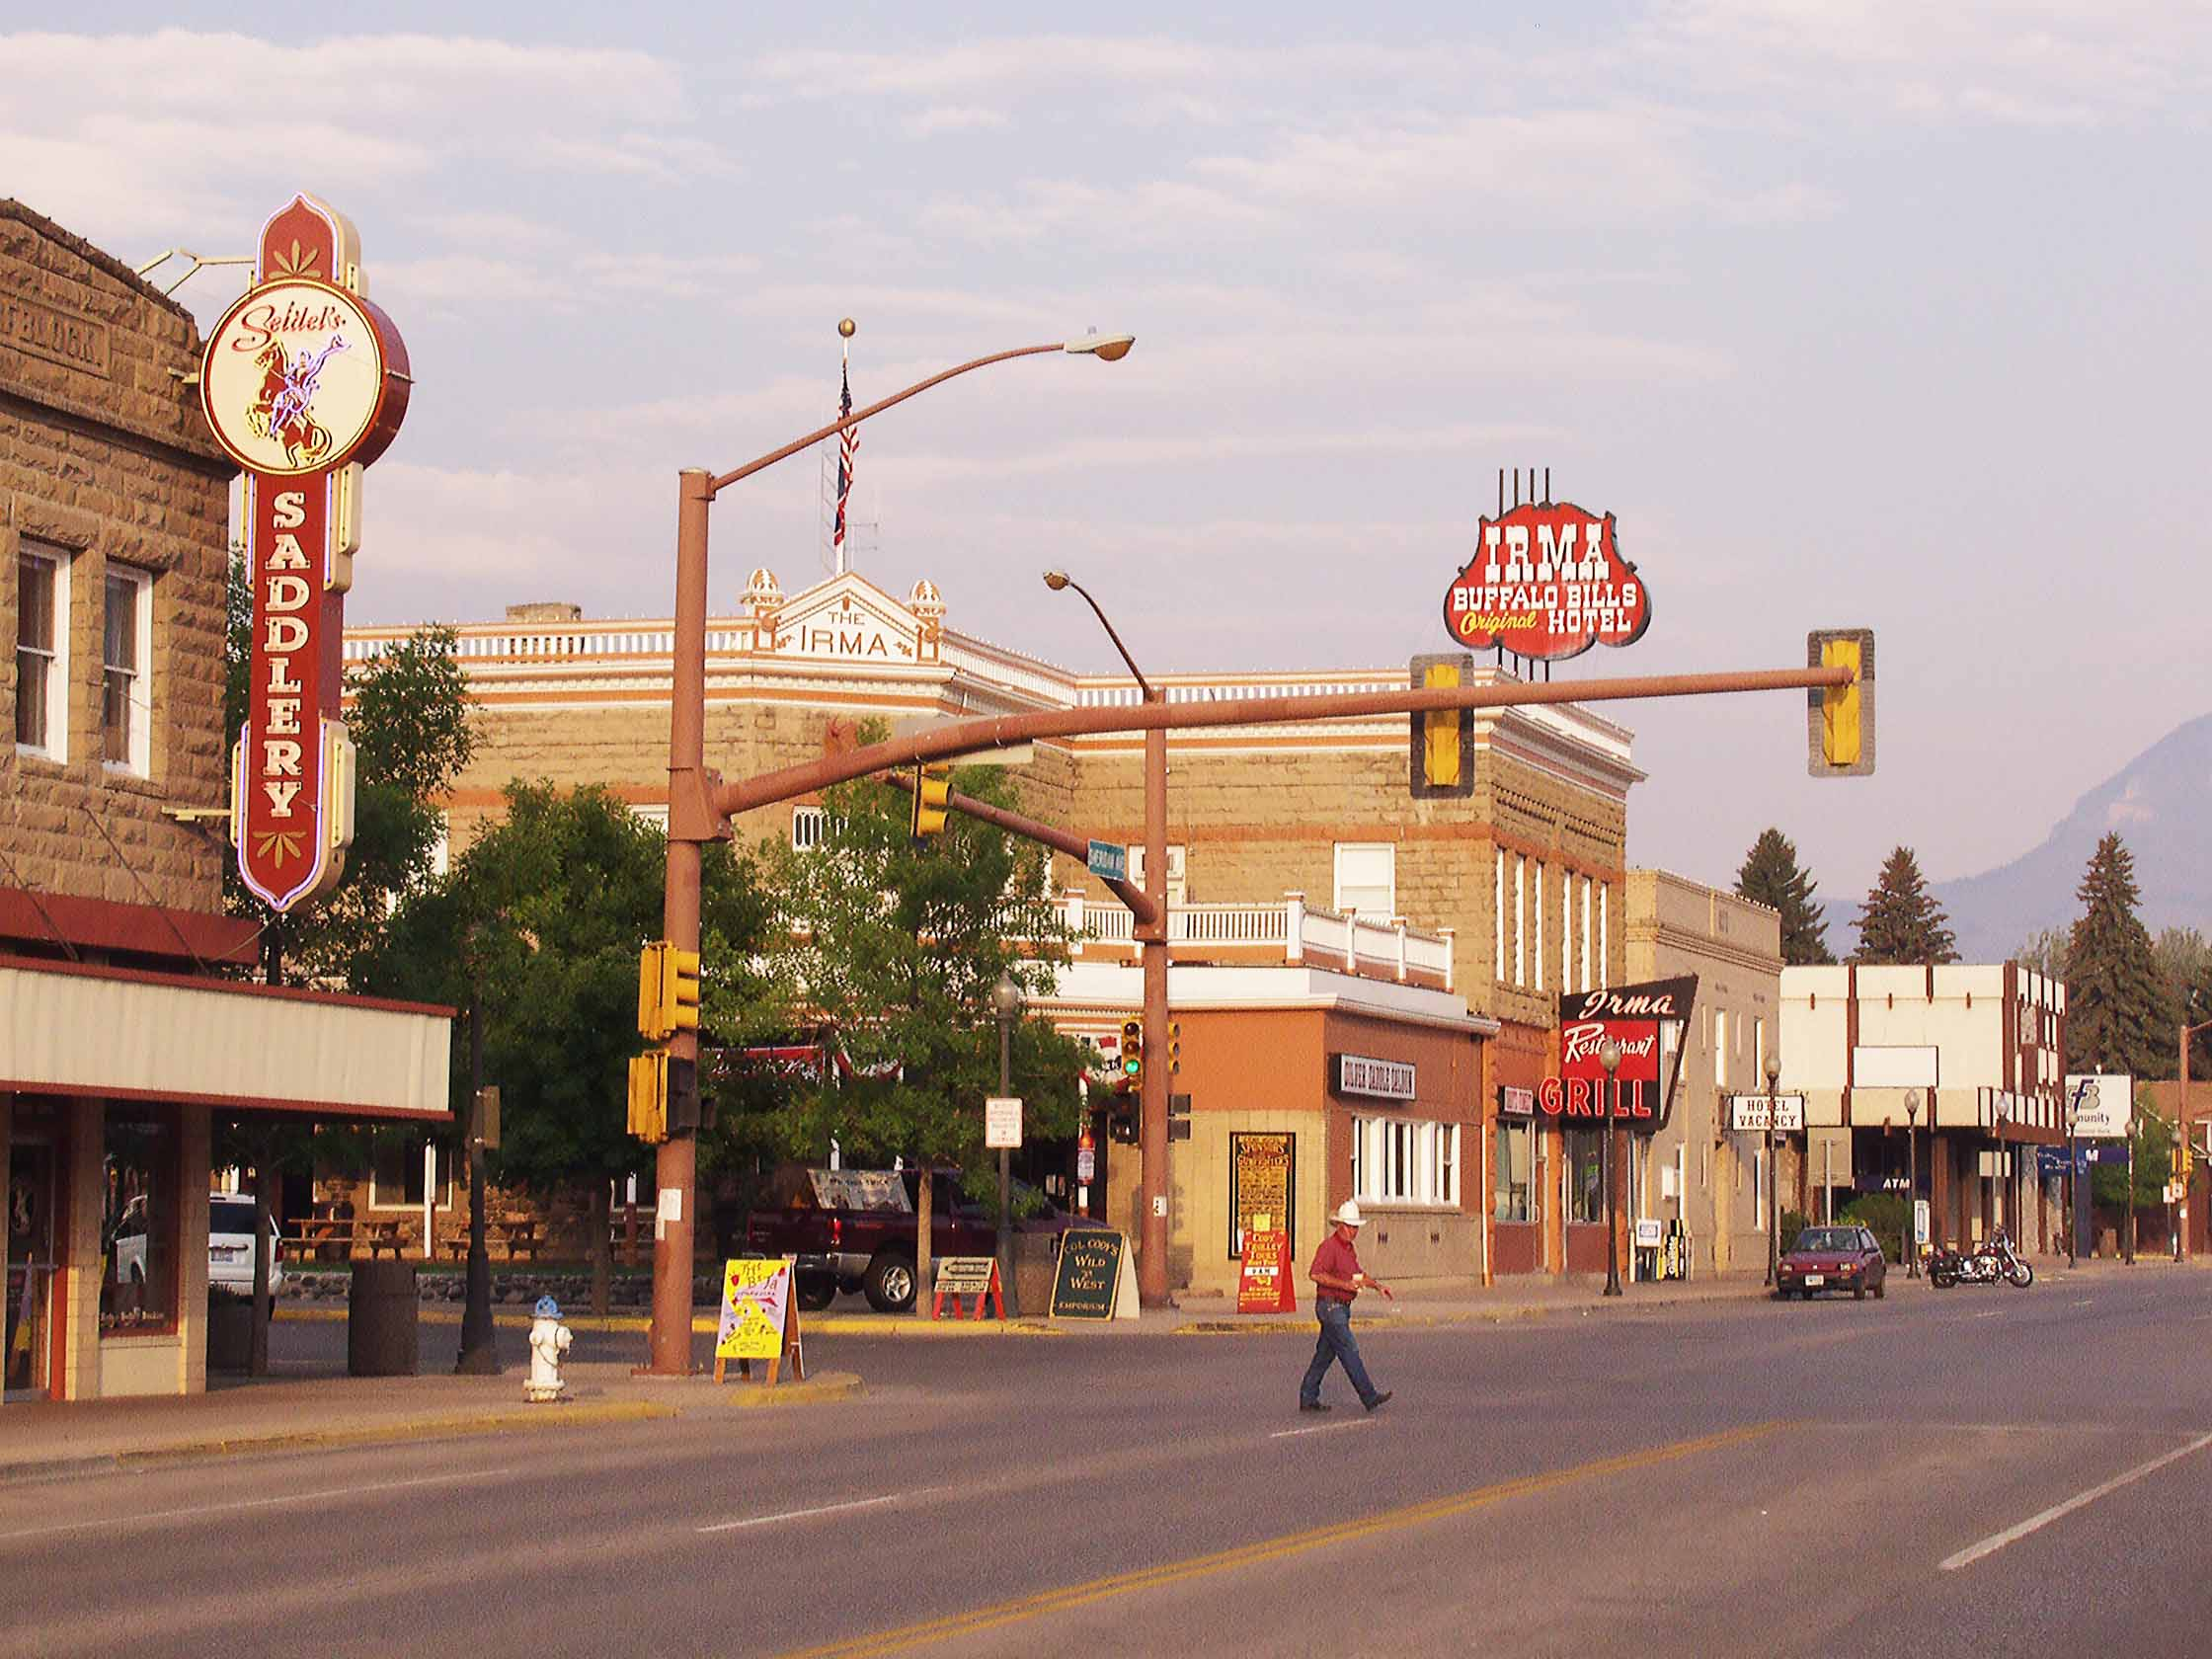 discovering Cody Yellowstone CountryA man crosses the street of an Old West town.